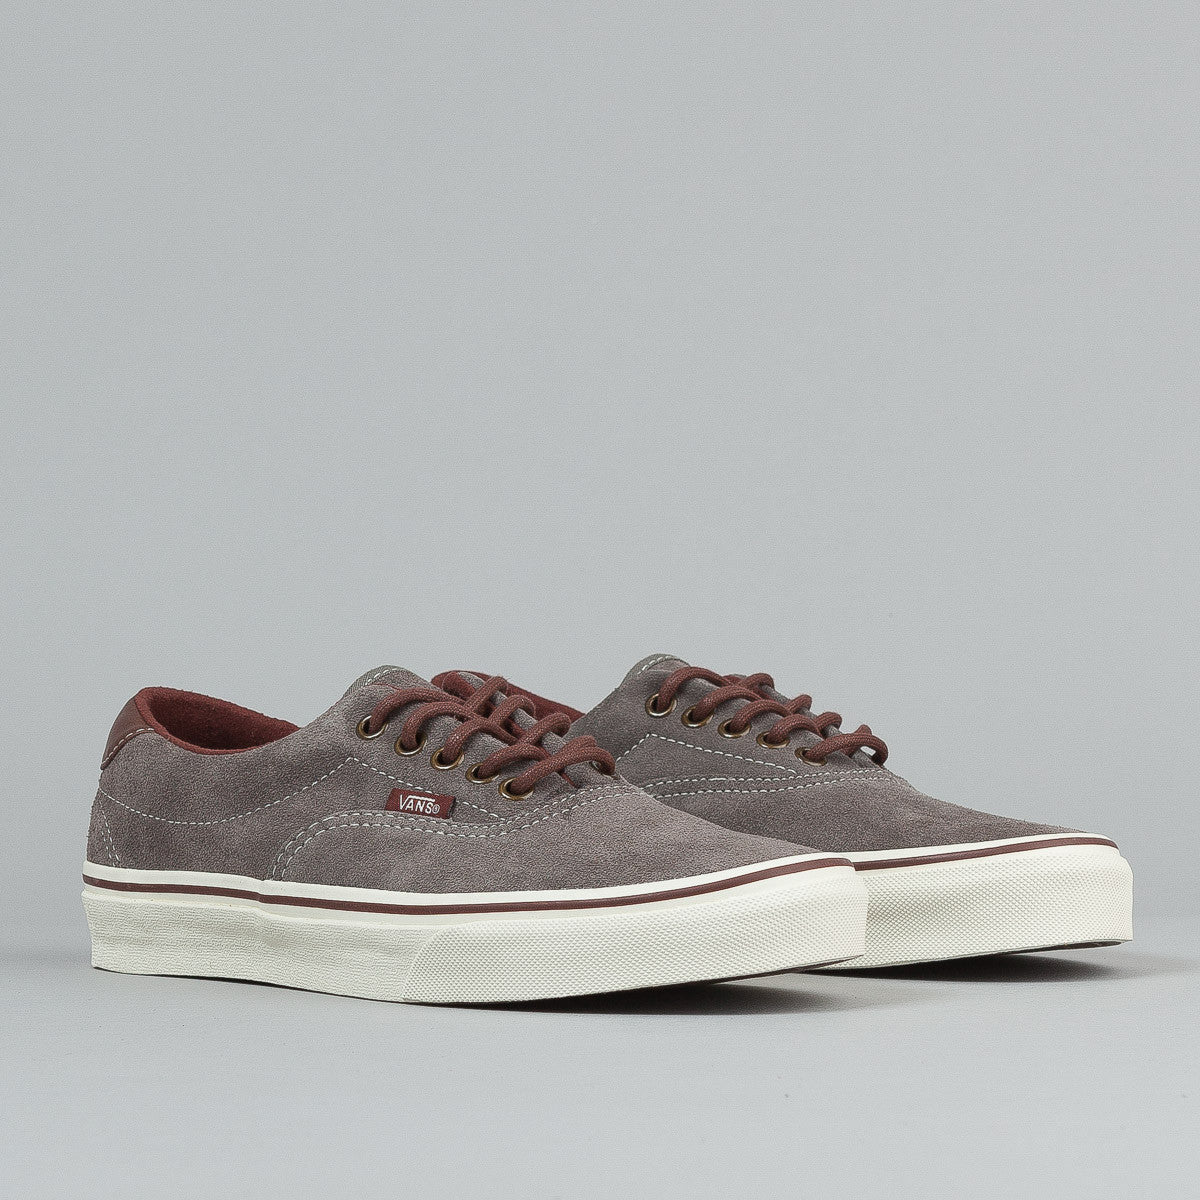 Vans Era 59 Shoes (Suede) - Pewter / Fudgesicle